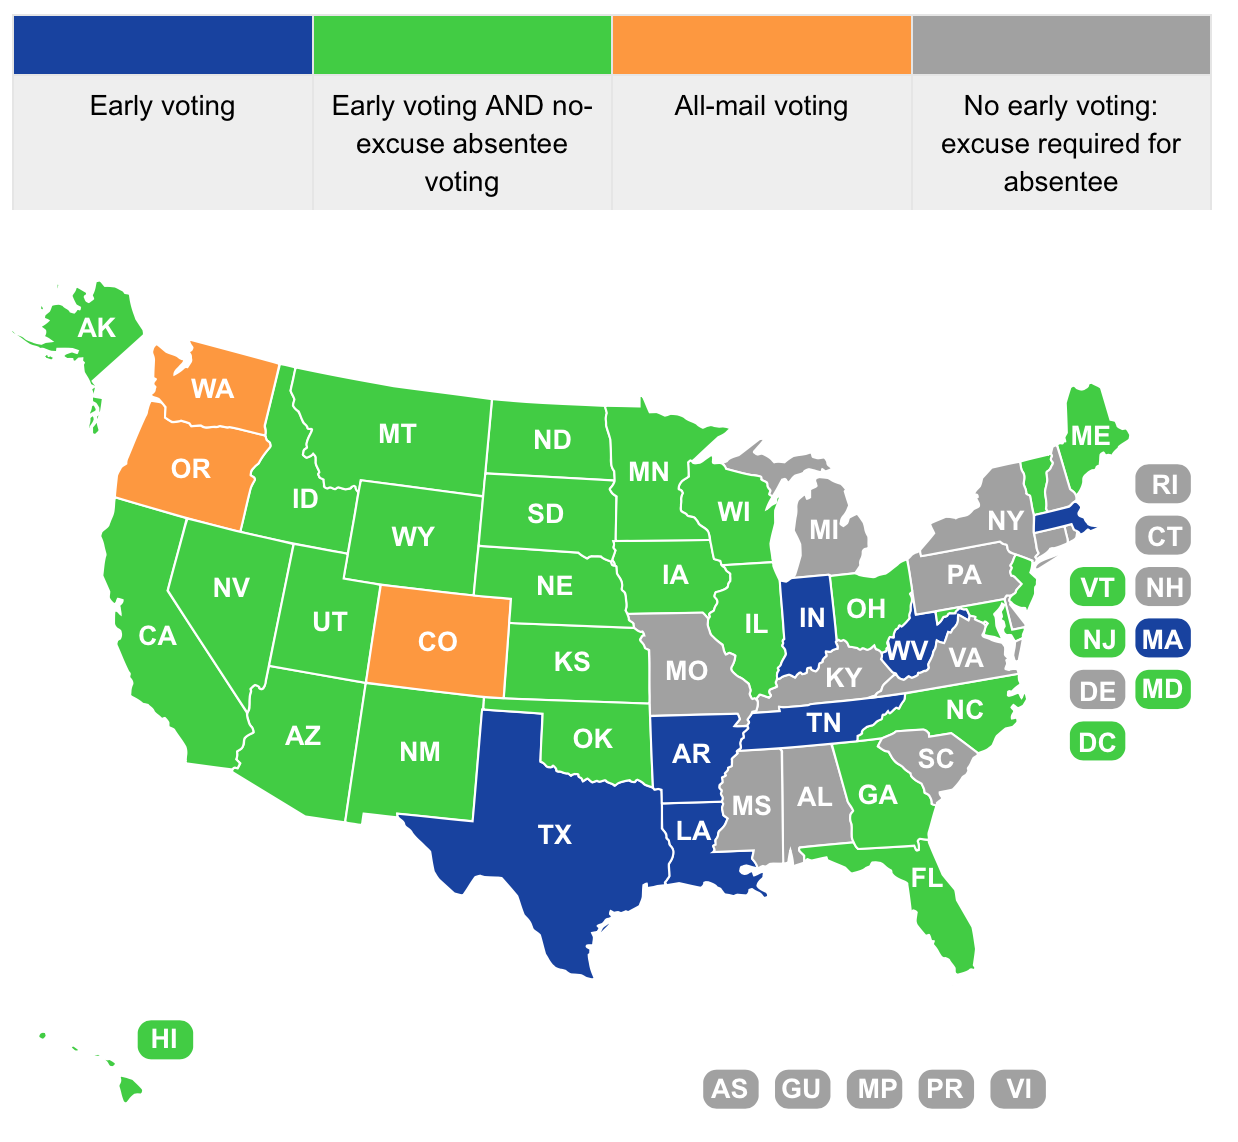 Early voting and absentee ballot laws by state.  Source: http://www.ncsl.org/research/elections-and-campaigns/absentee-and-early-voting.aspx